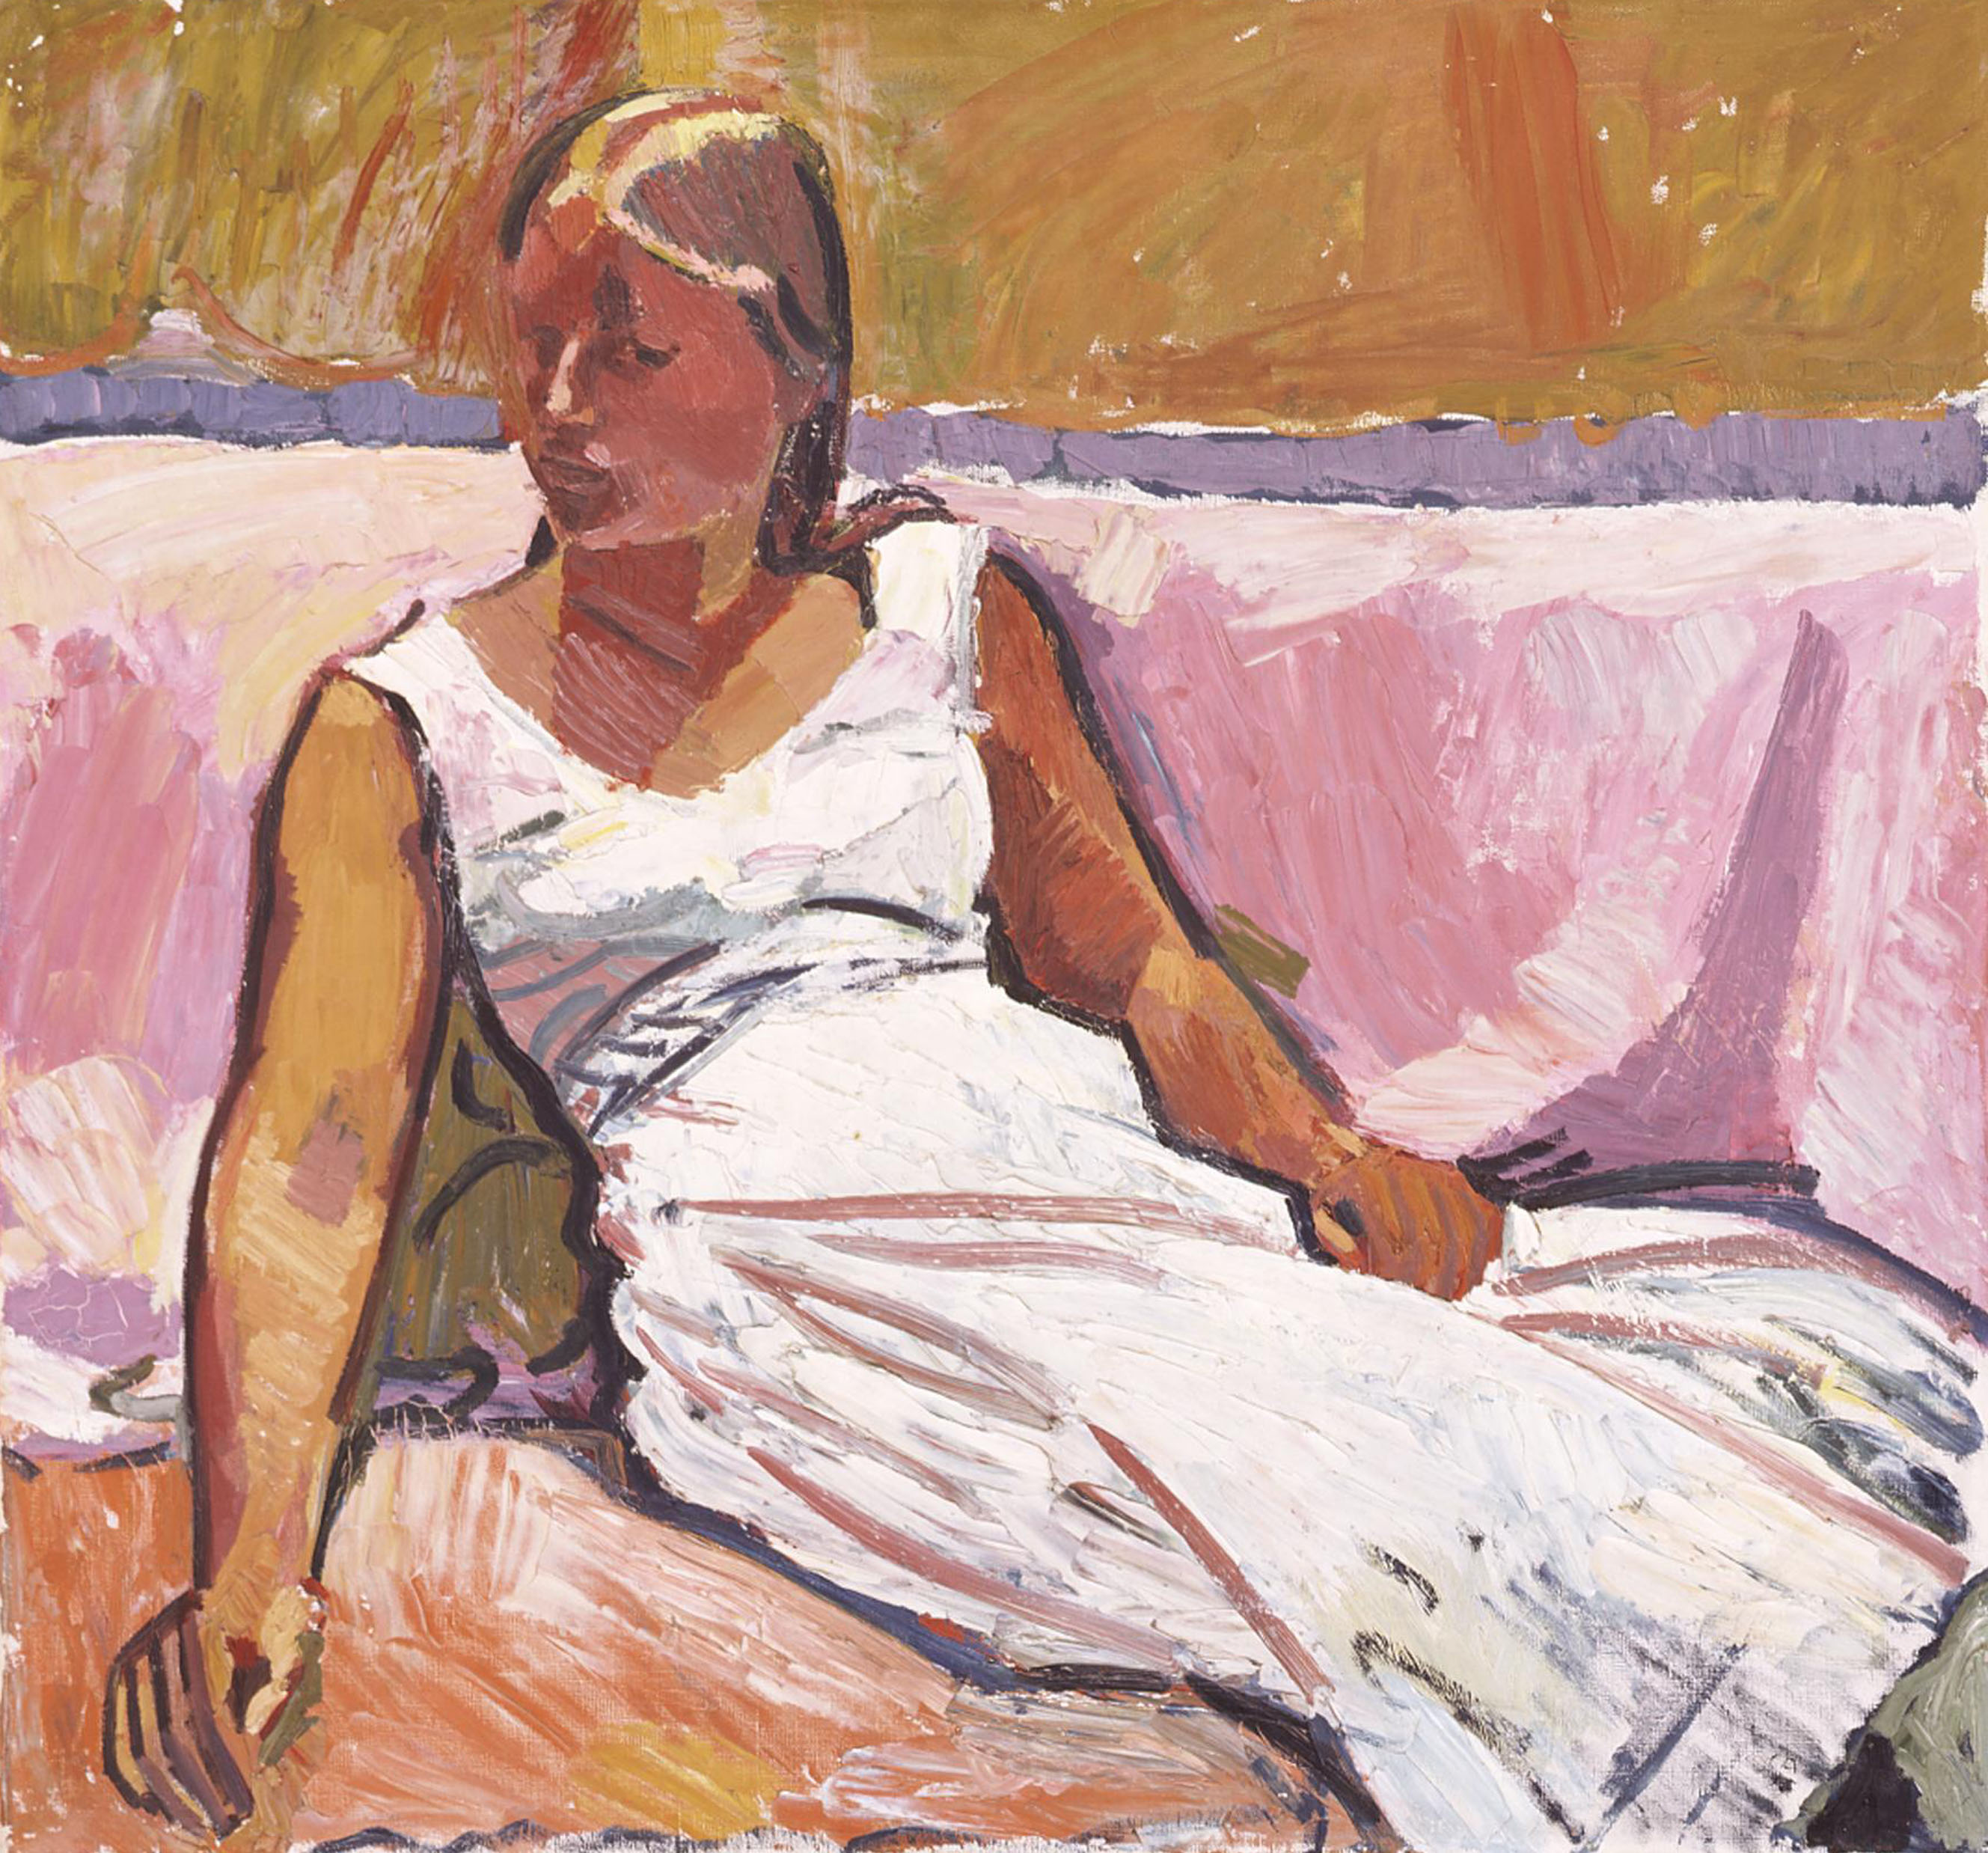 Cuno Amiet, A Girl Sitting, 1915, Museum of Art Lucerne, permanent loan from the Bernhard Eglin-Stiftung. Photo: © Museum of Art Lucerne